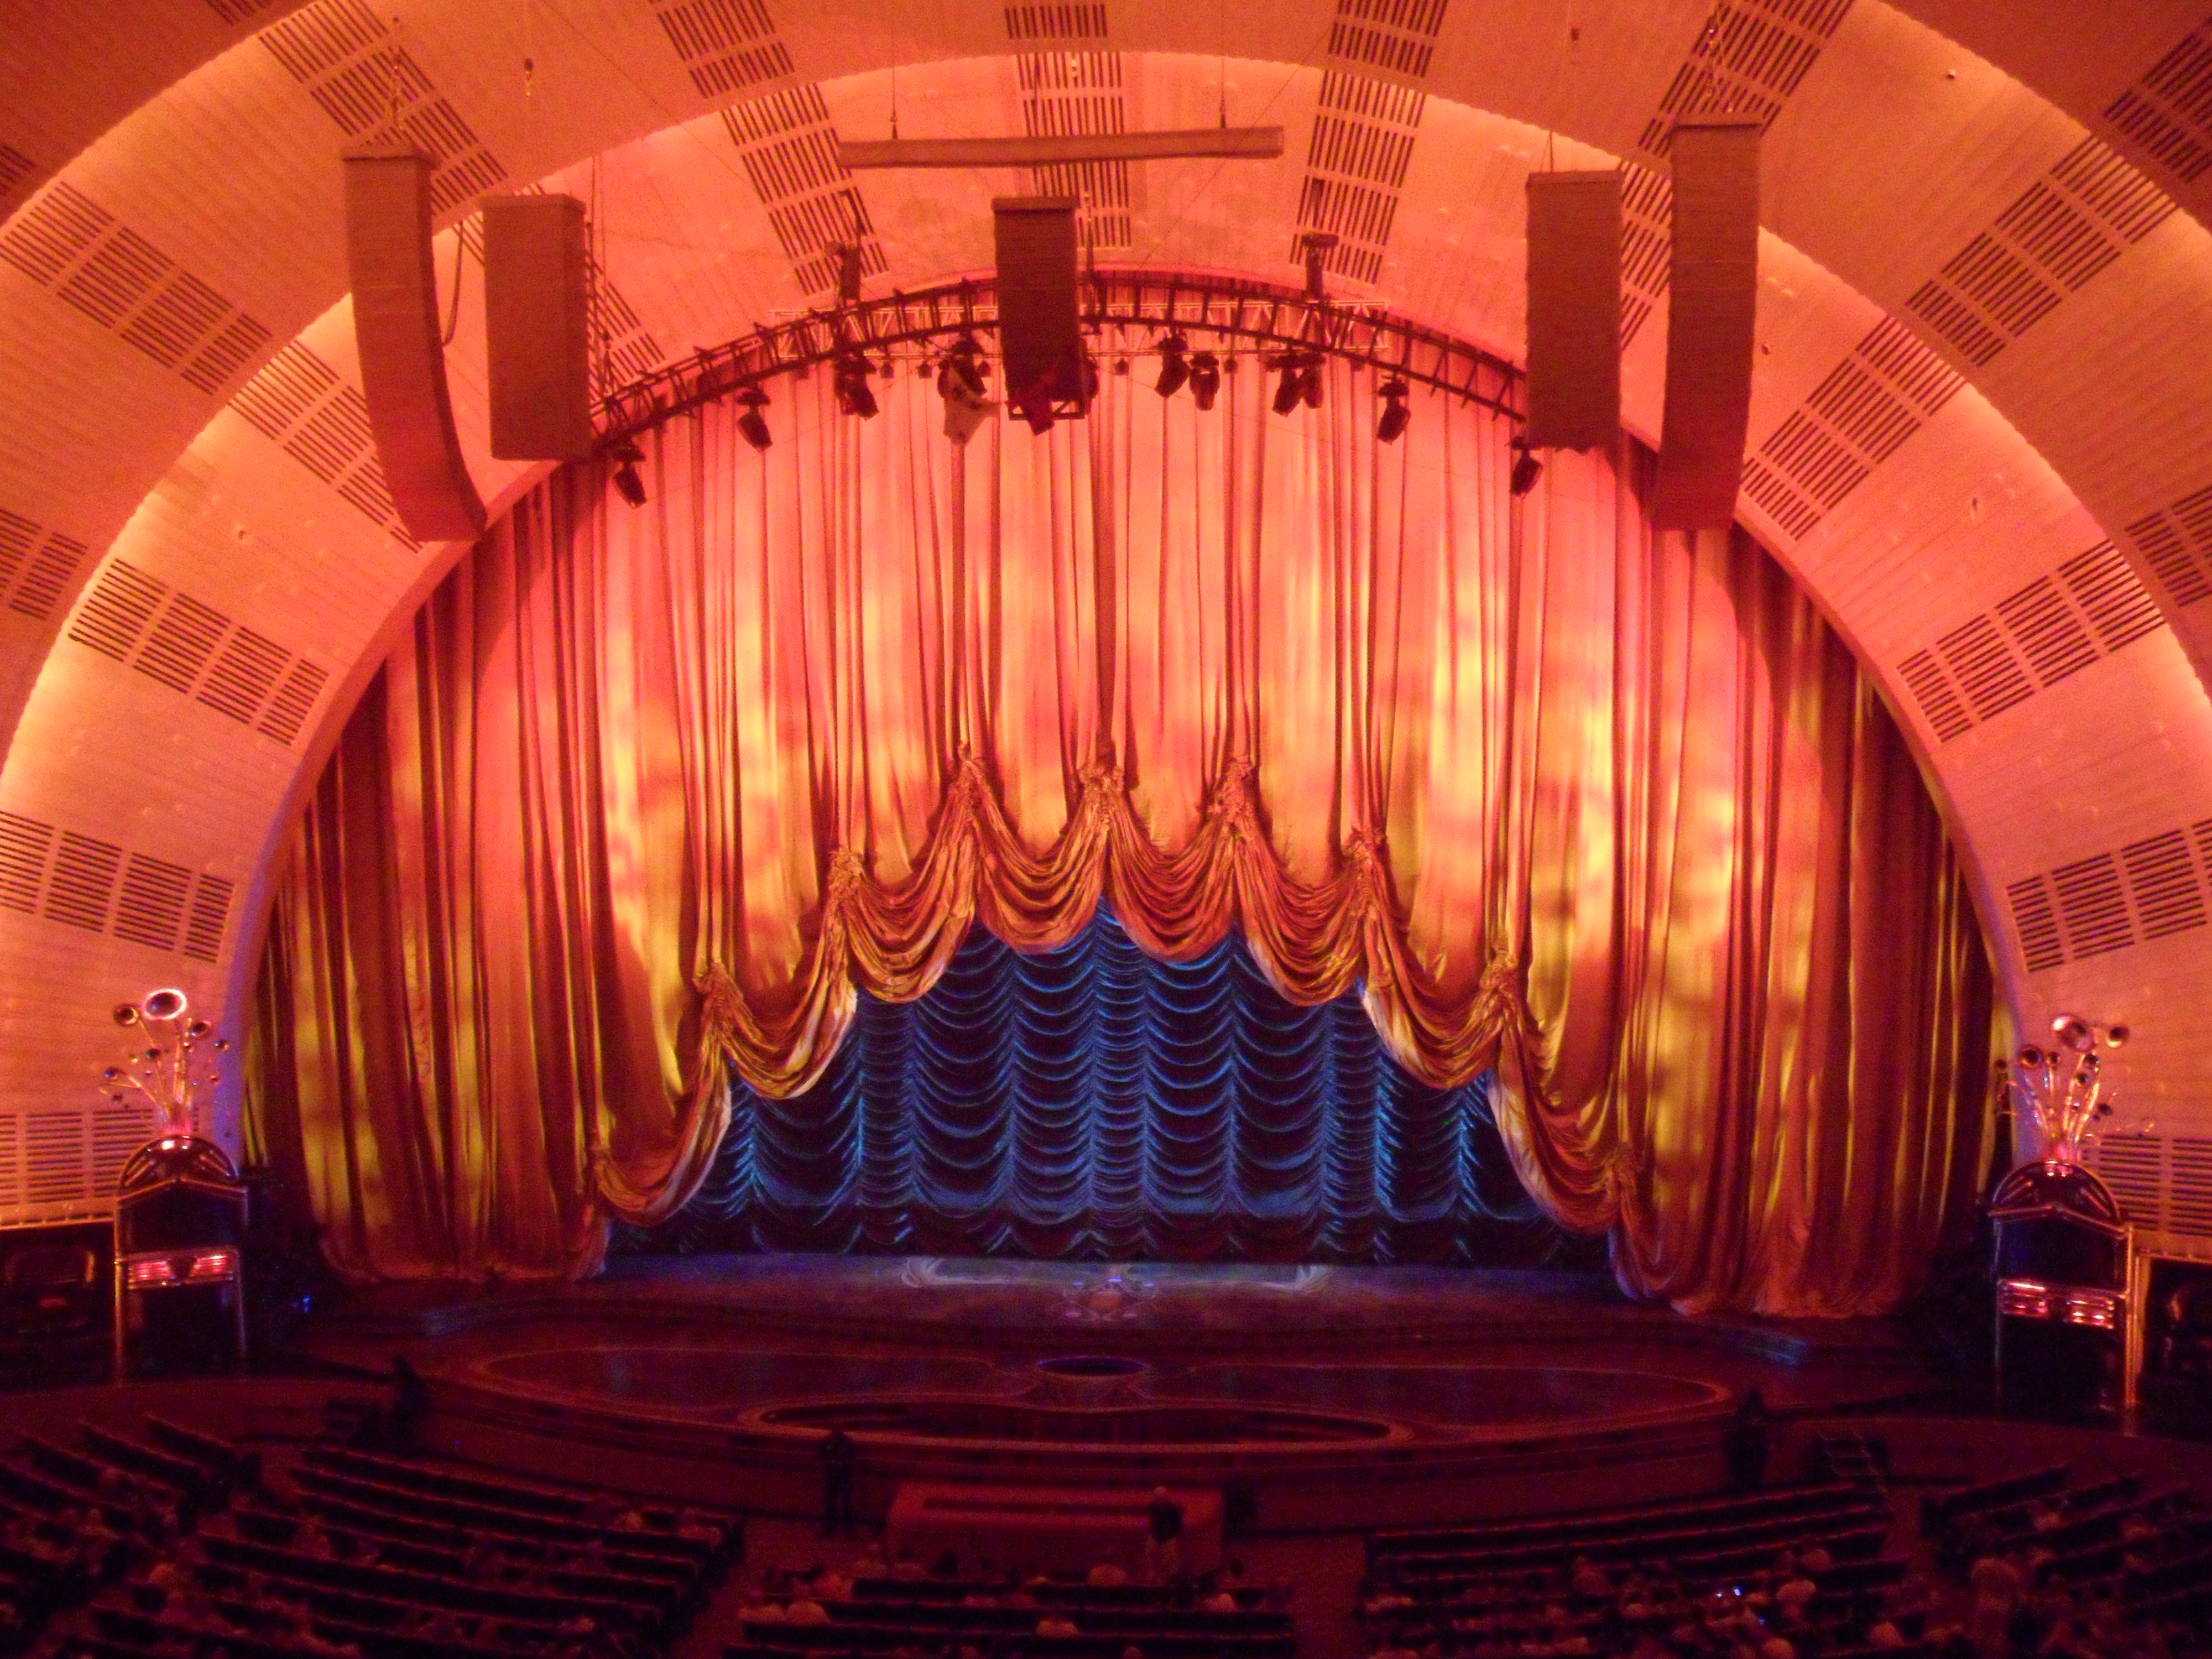 LocationPhotoDirectLink G60795 D265360 I45592730 Kimmel Center for the Performing Arts Philadelphia Pennsylvania moreover Stage Curtains Types Part Iii additionally For Saugus A Push Beyond Route 1 2480 moreover Radio city music hall furthermore 1st Mezzanine 6. on radio city orchestra view 1